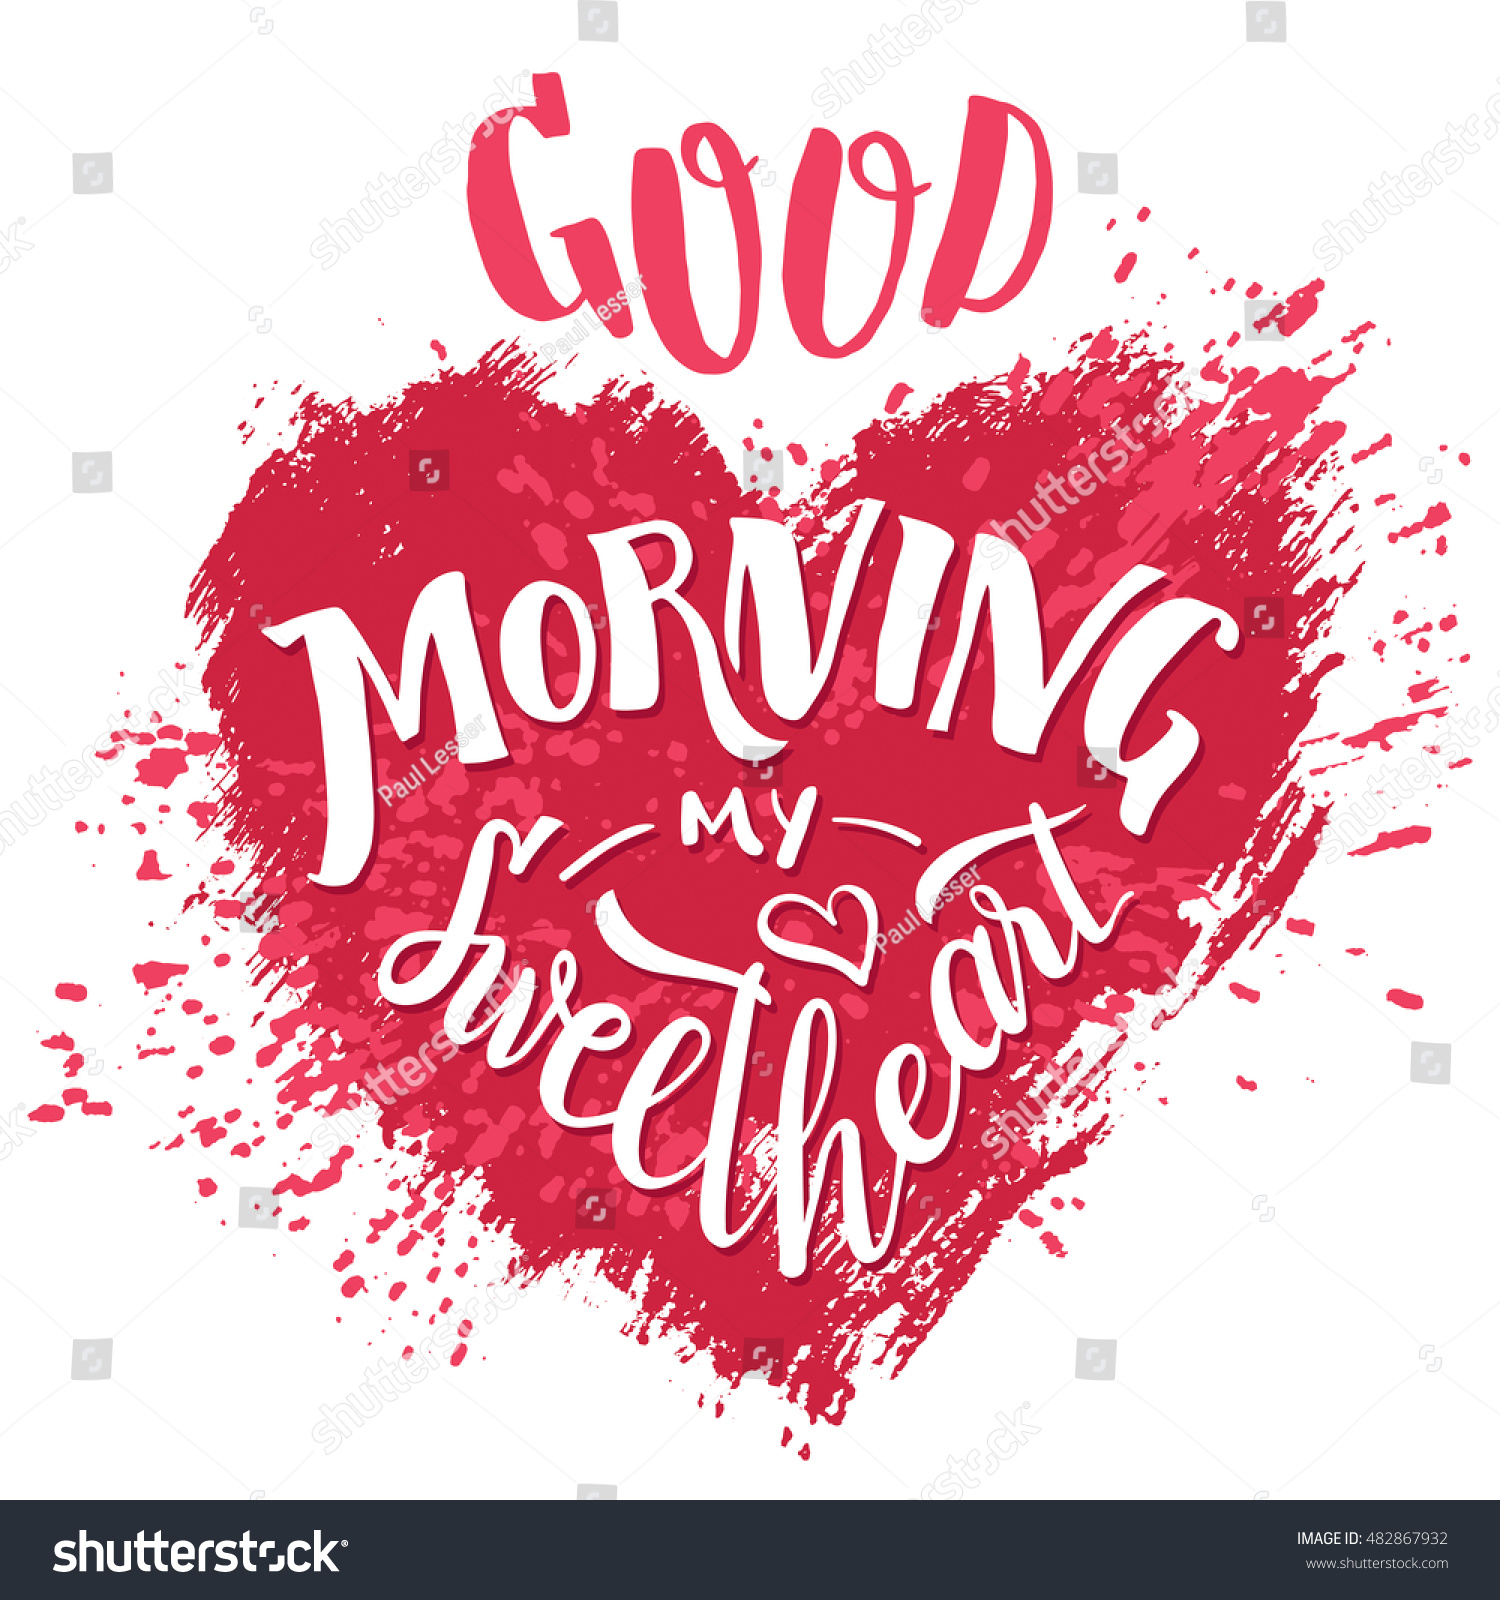 Good morning my sweetheart hand lettering stock vector royalty free good morning my sweetheart hand lettering valentines day greeting card typography poster design m4hsunfo